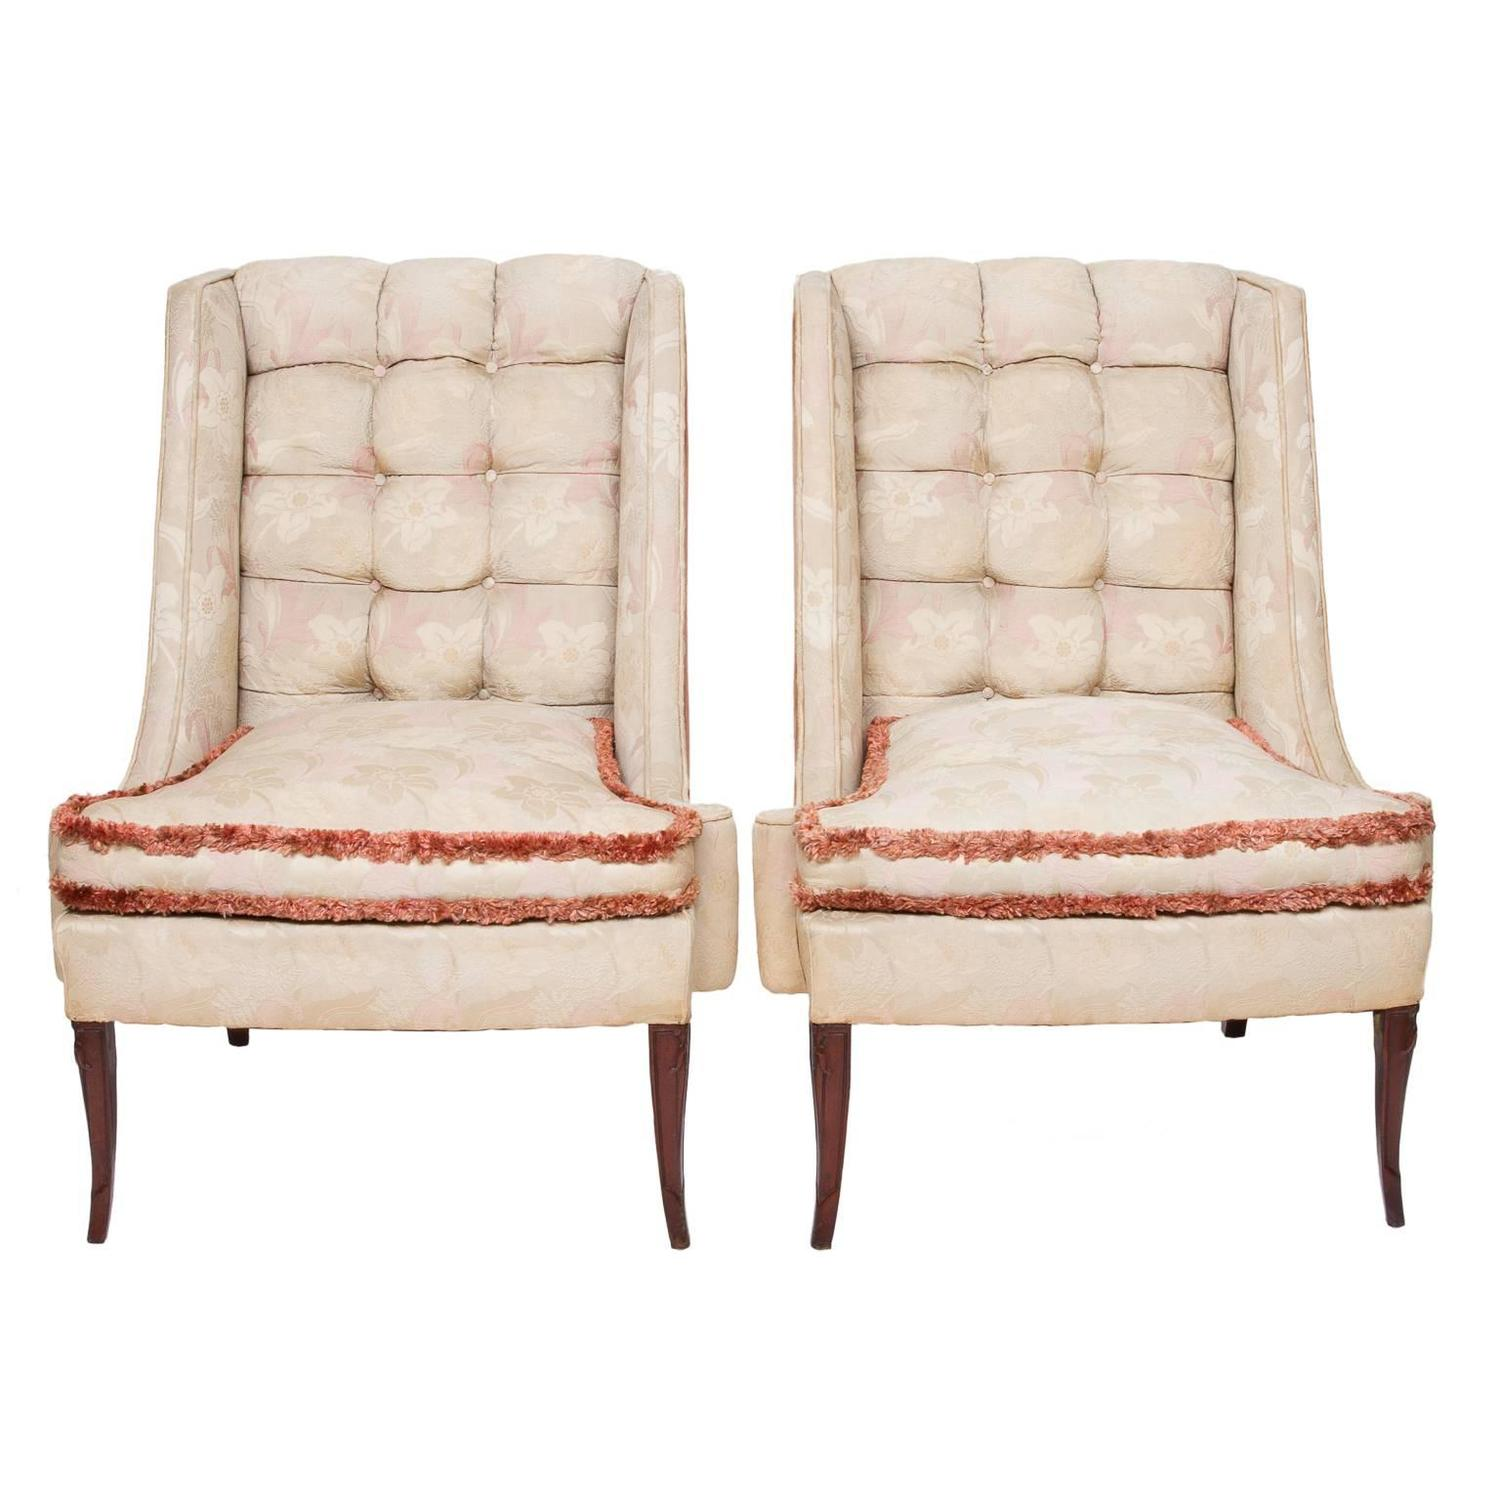 1930s Custom Vintage Shabby Chic Wing Chairs For Sale at 1stdibs